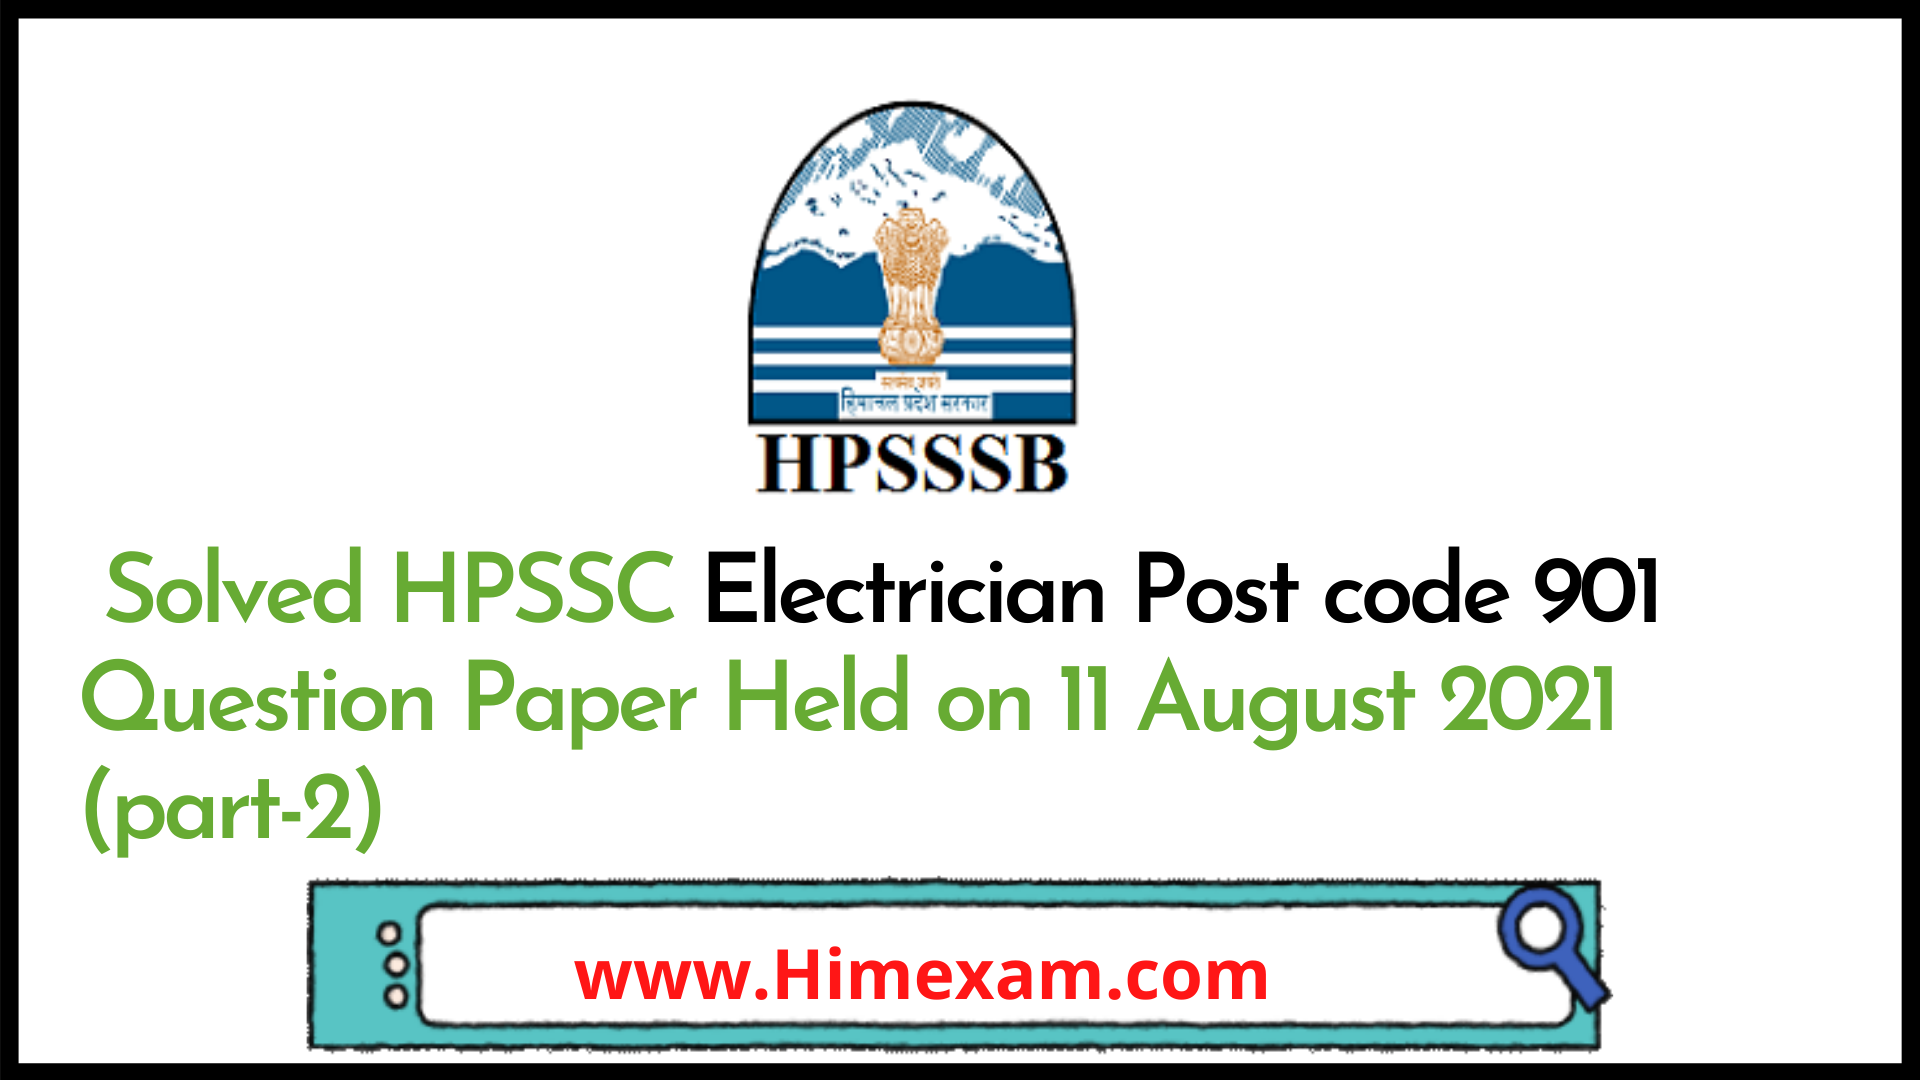 Solved HPSSC Electrician Post code 901 Question Paper Held on 11 August 2021 (part-2)